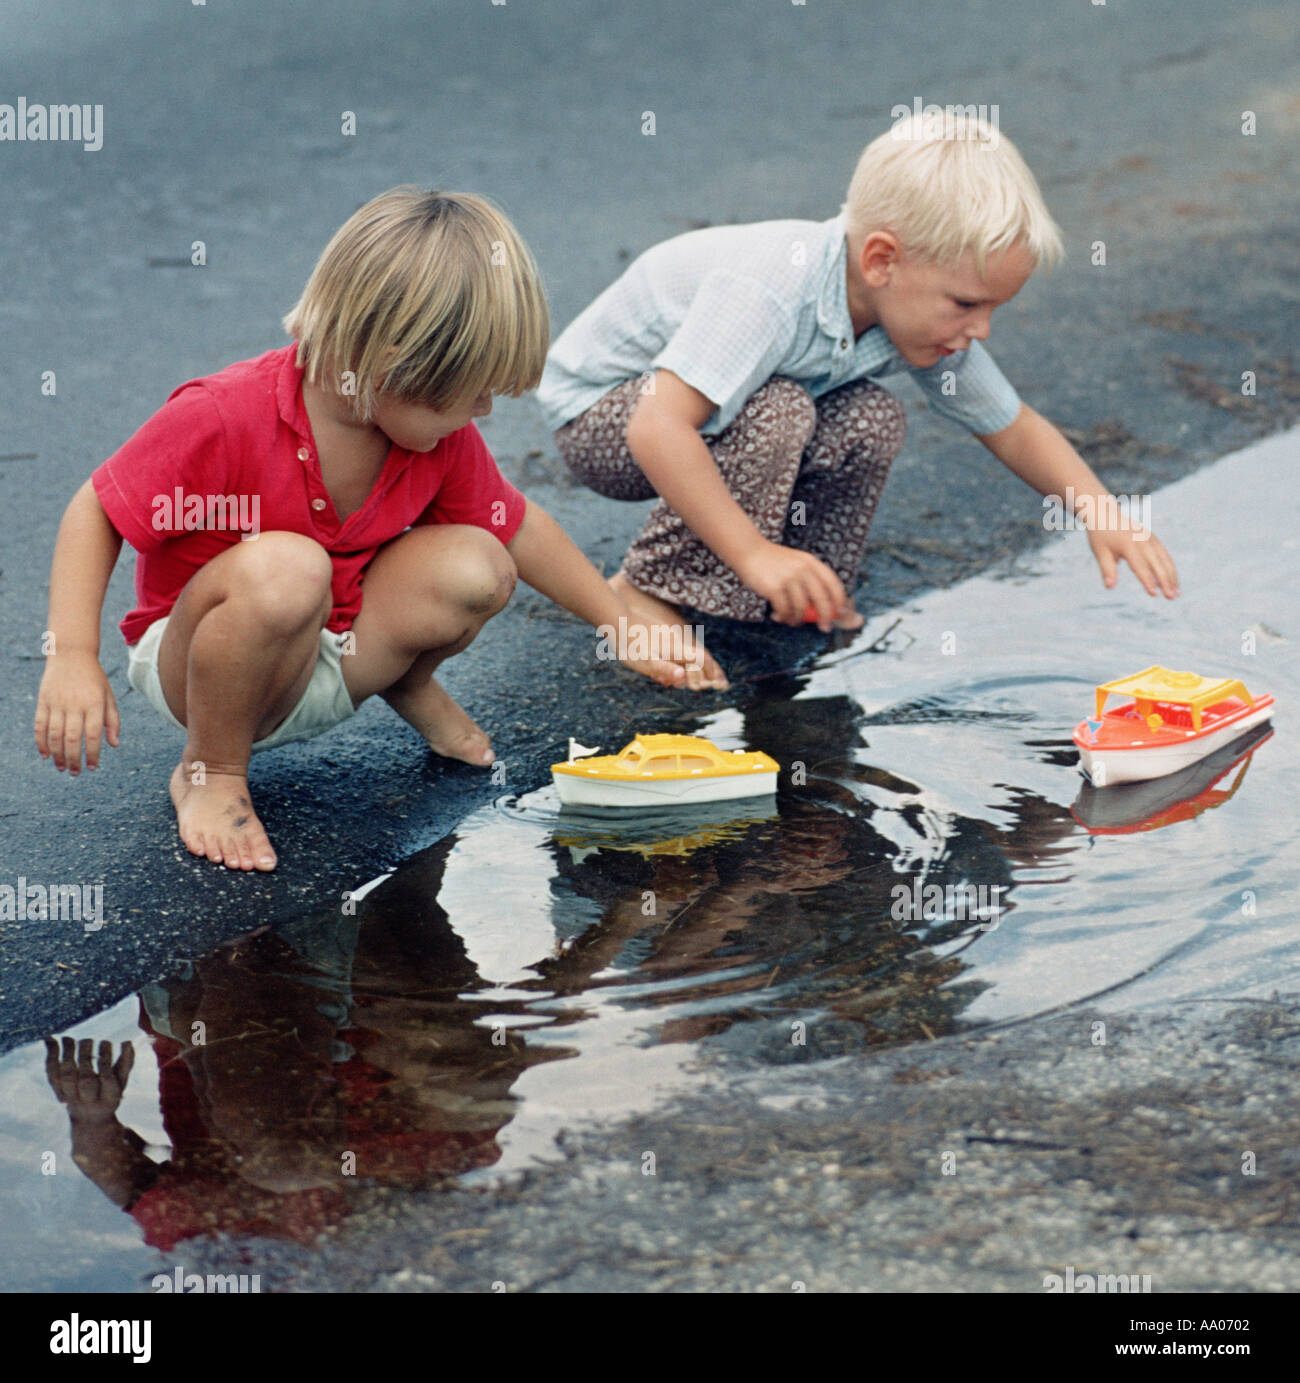 Lillle Boy Toys Boats : Two boys playing with toy boats in puddle of water stock